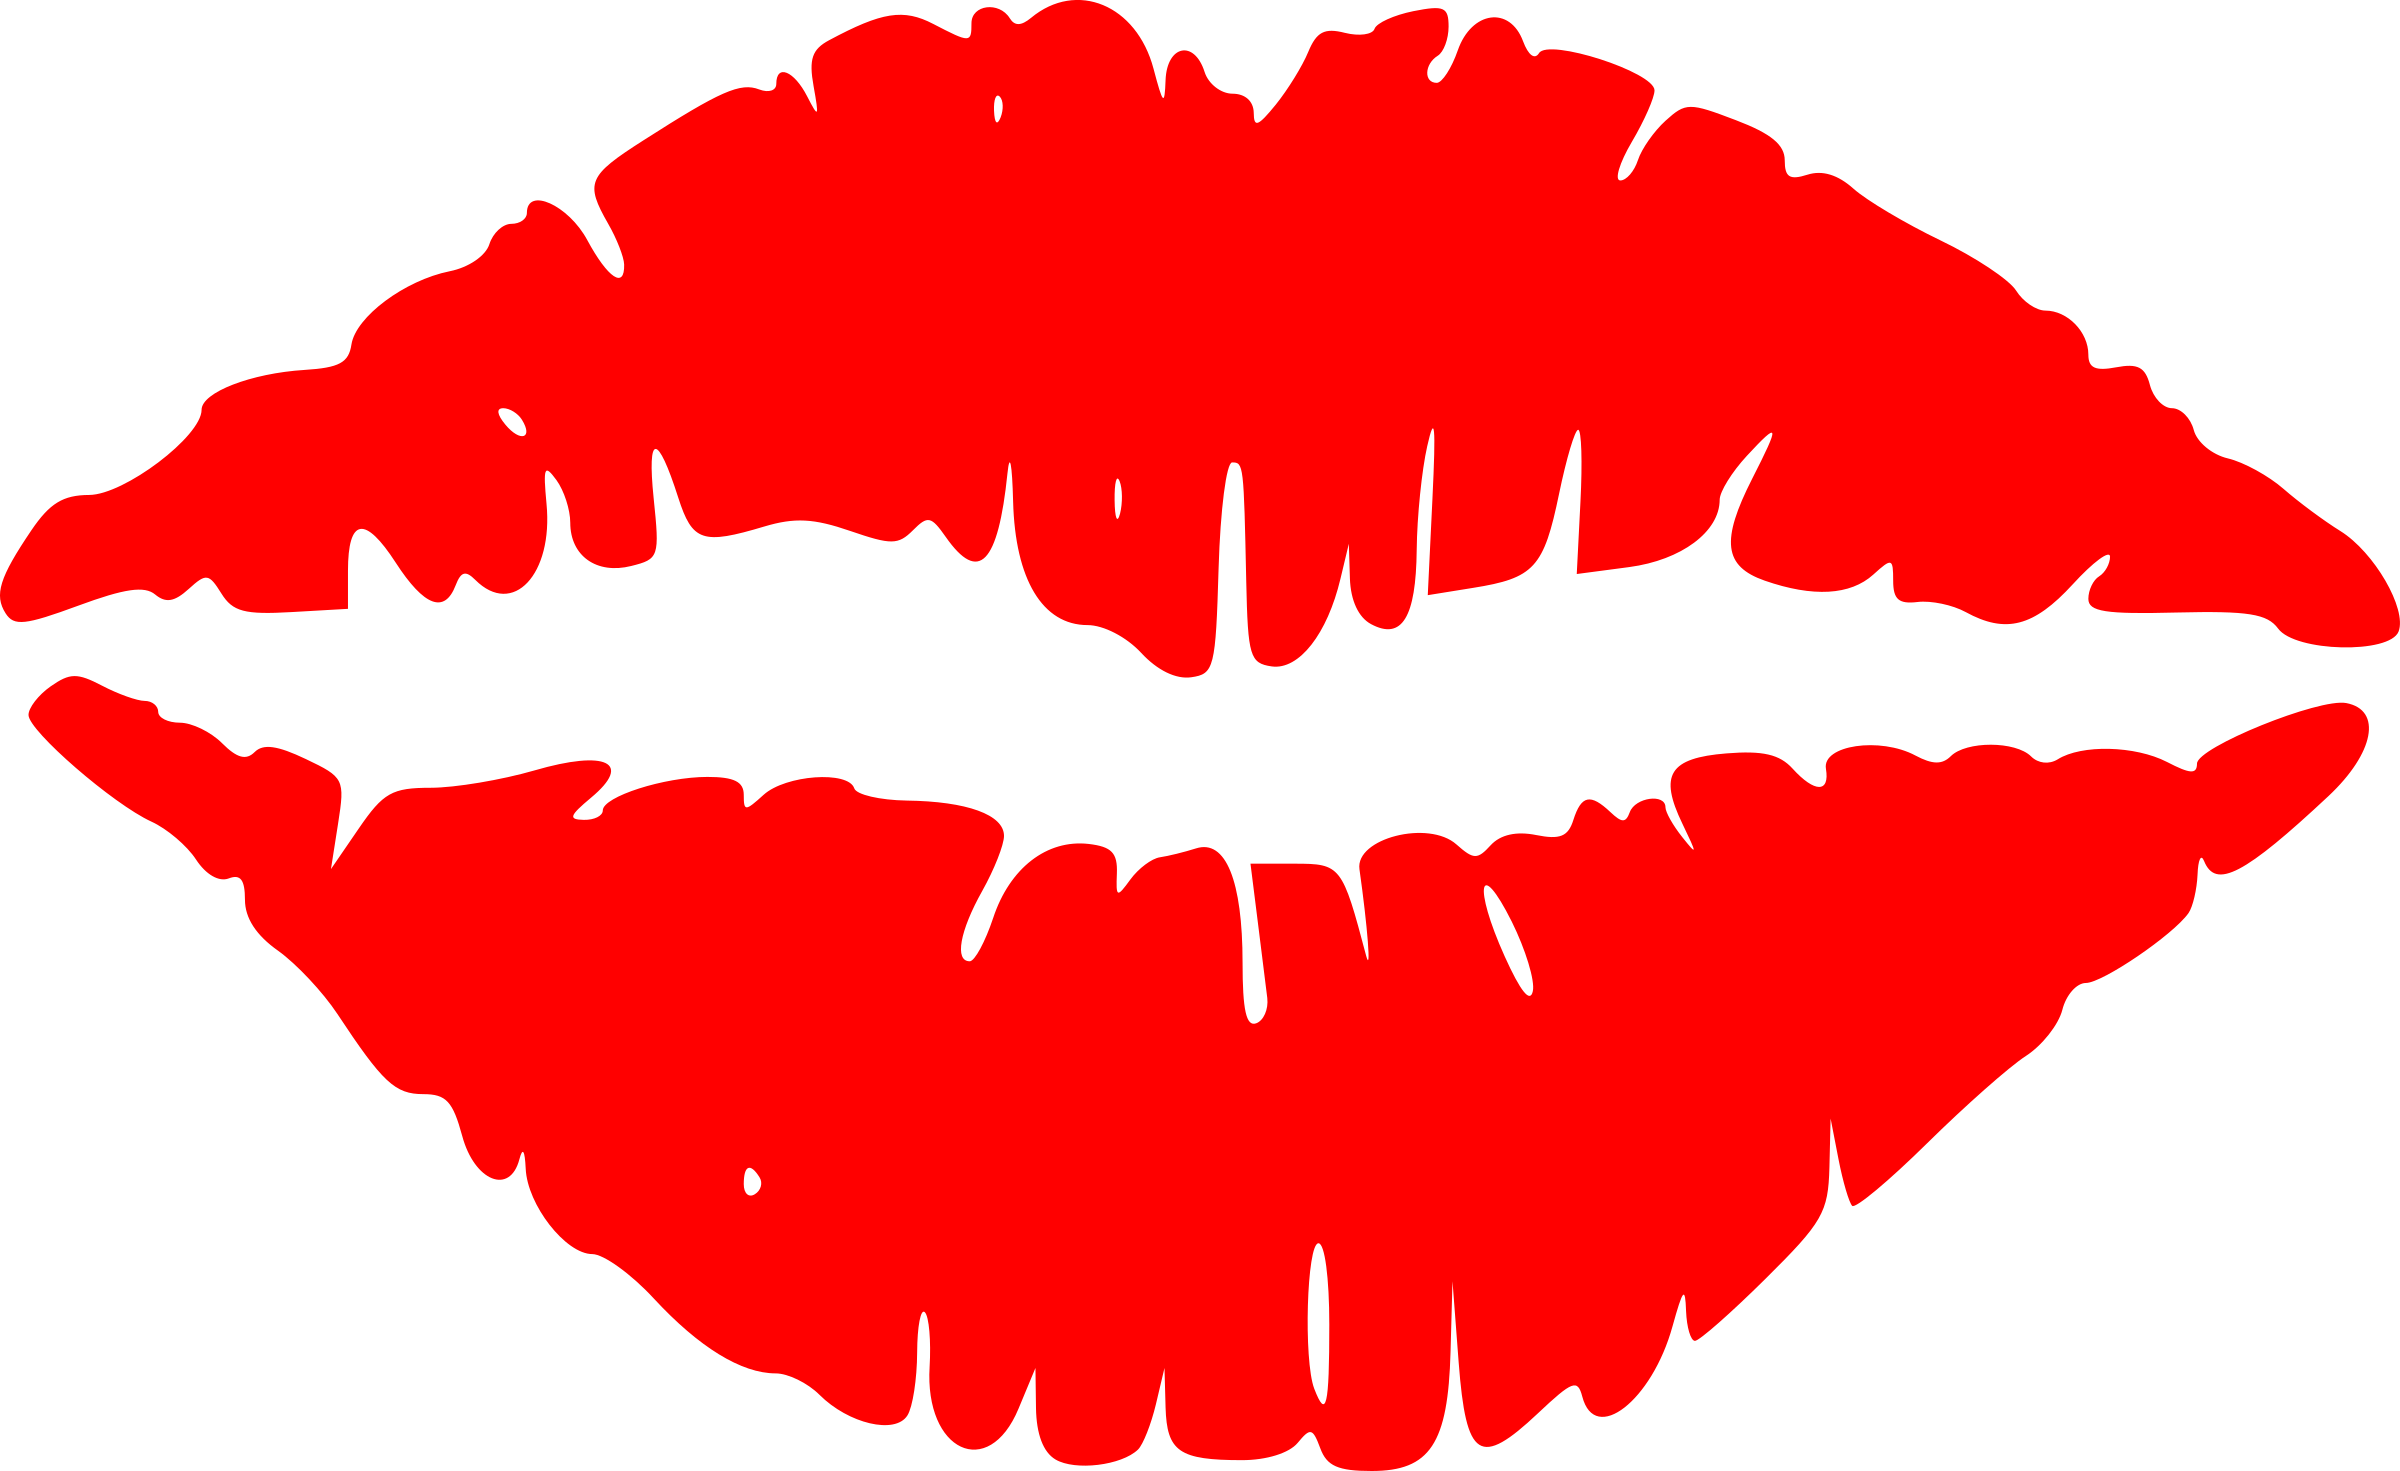 Lips icons png free. Lip clipart simple lip